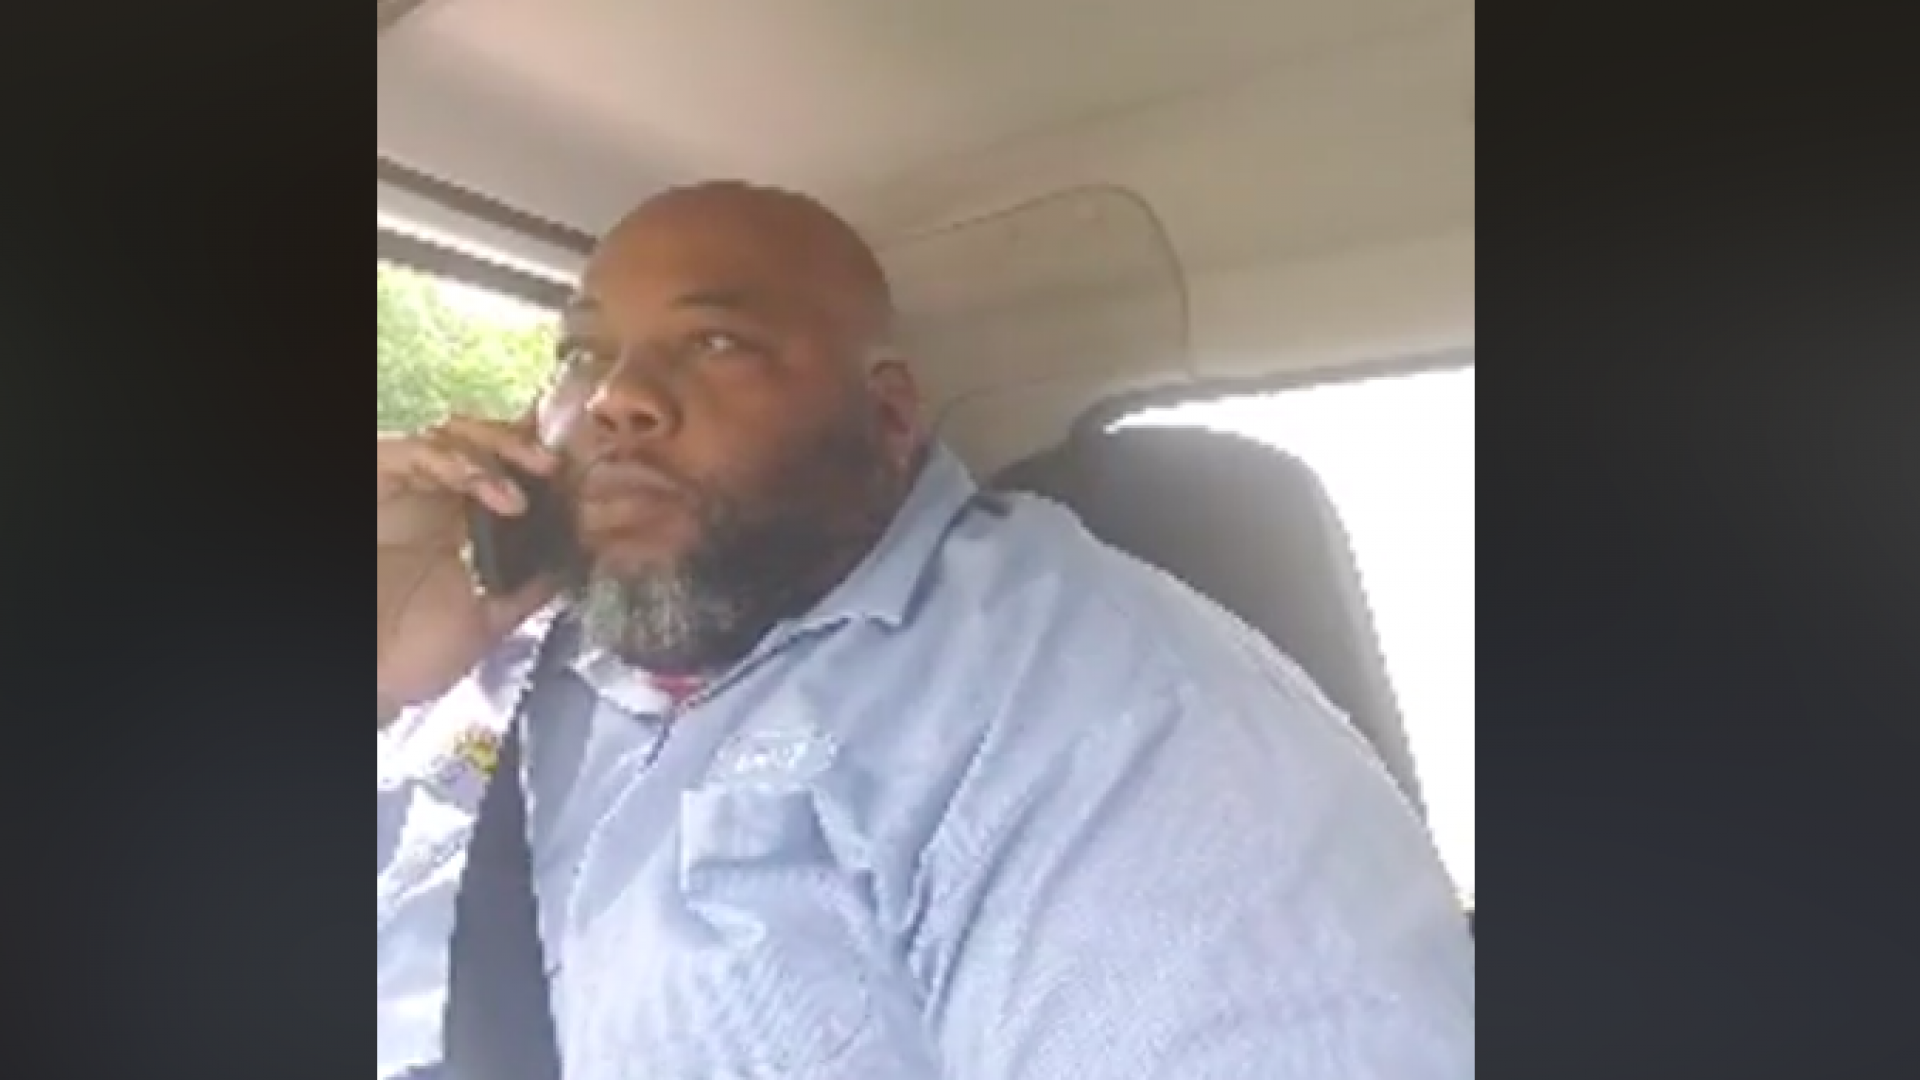 White Man Blocks Black Deliveryman In Gated Community, Demands To Know Where He's Going